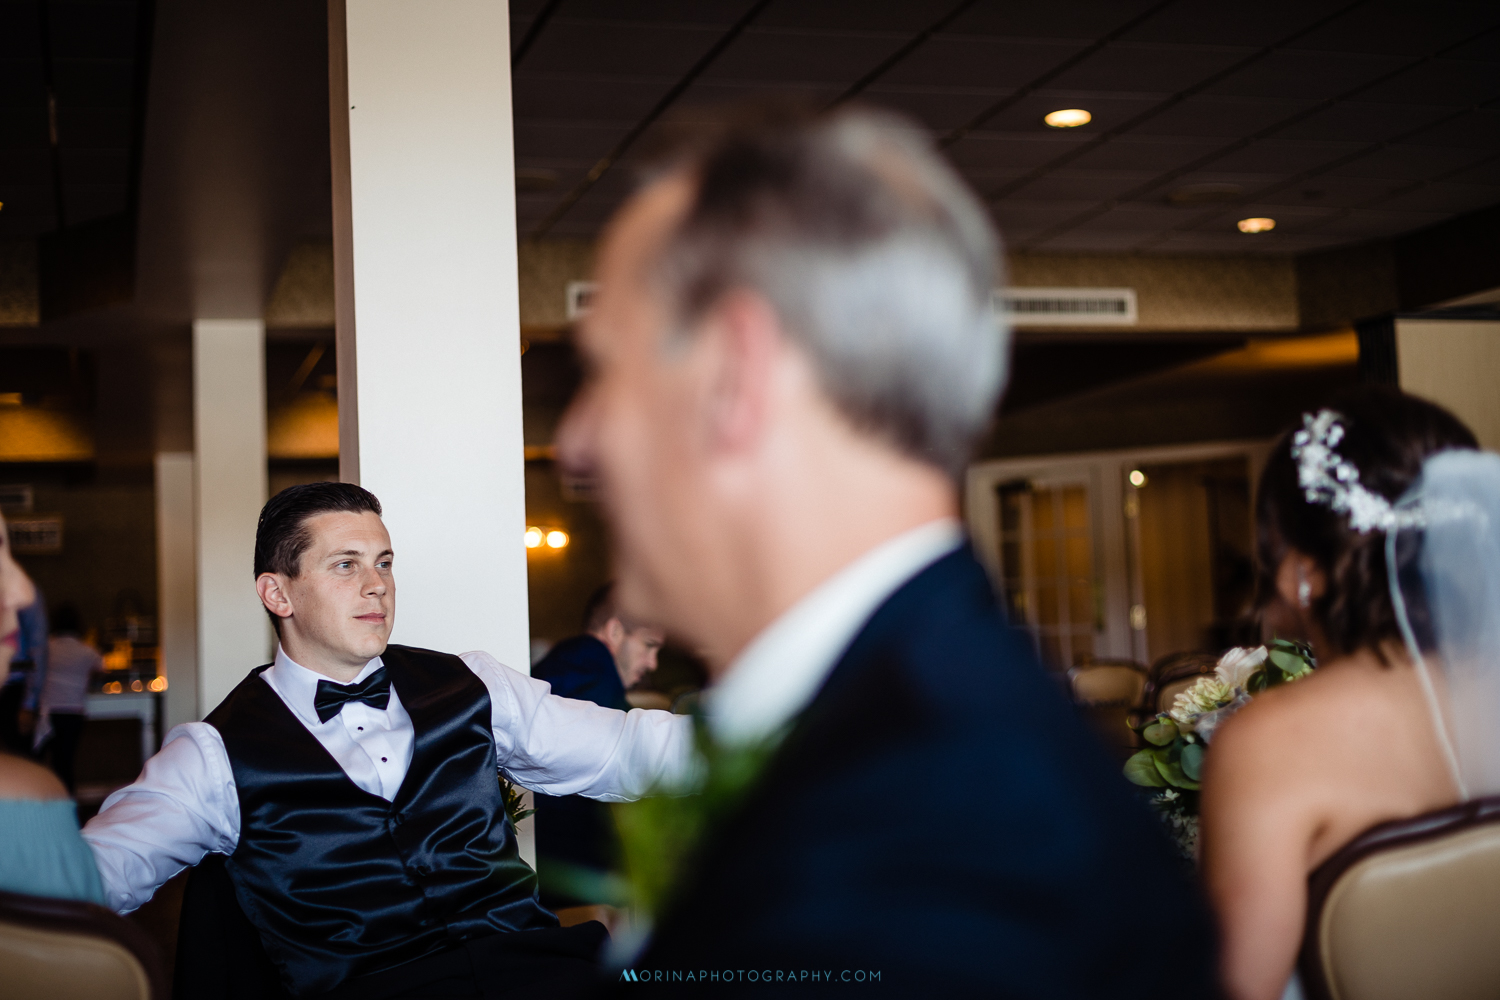 Amanda & Austin wedding at Crystal Point Yacht Club 65.jpg